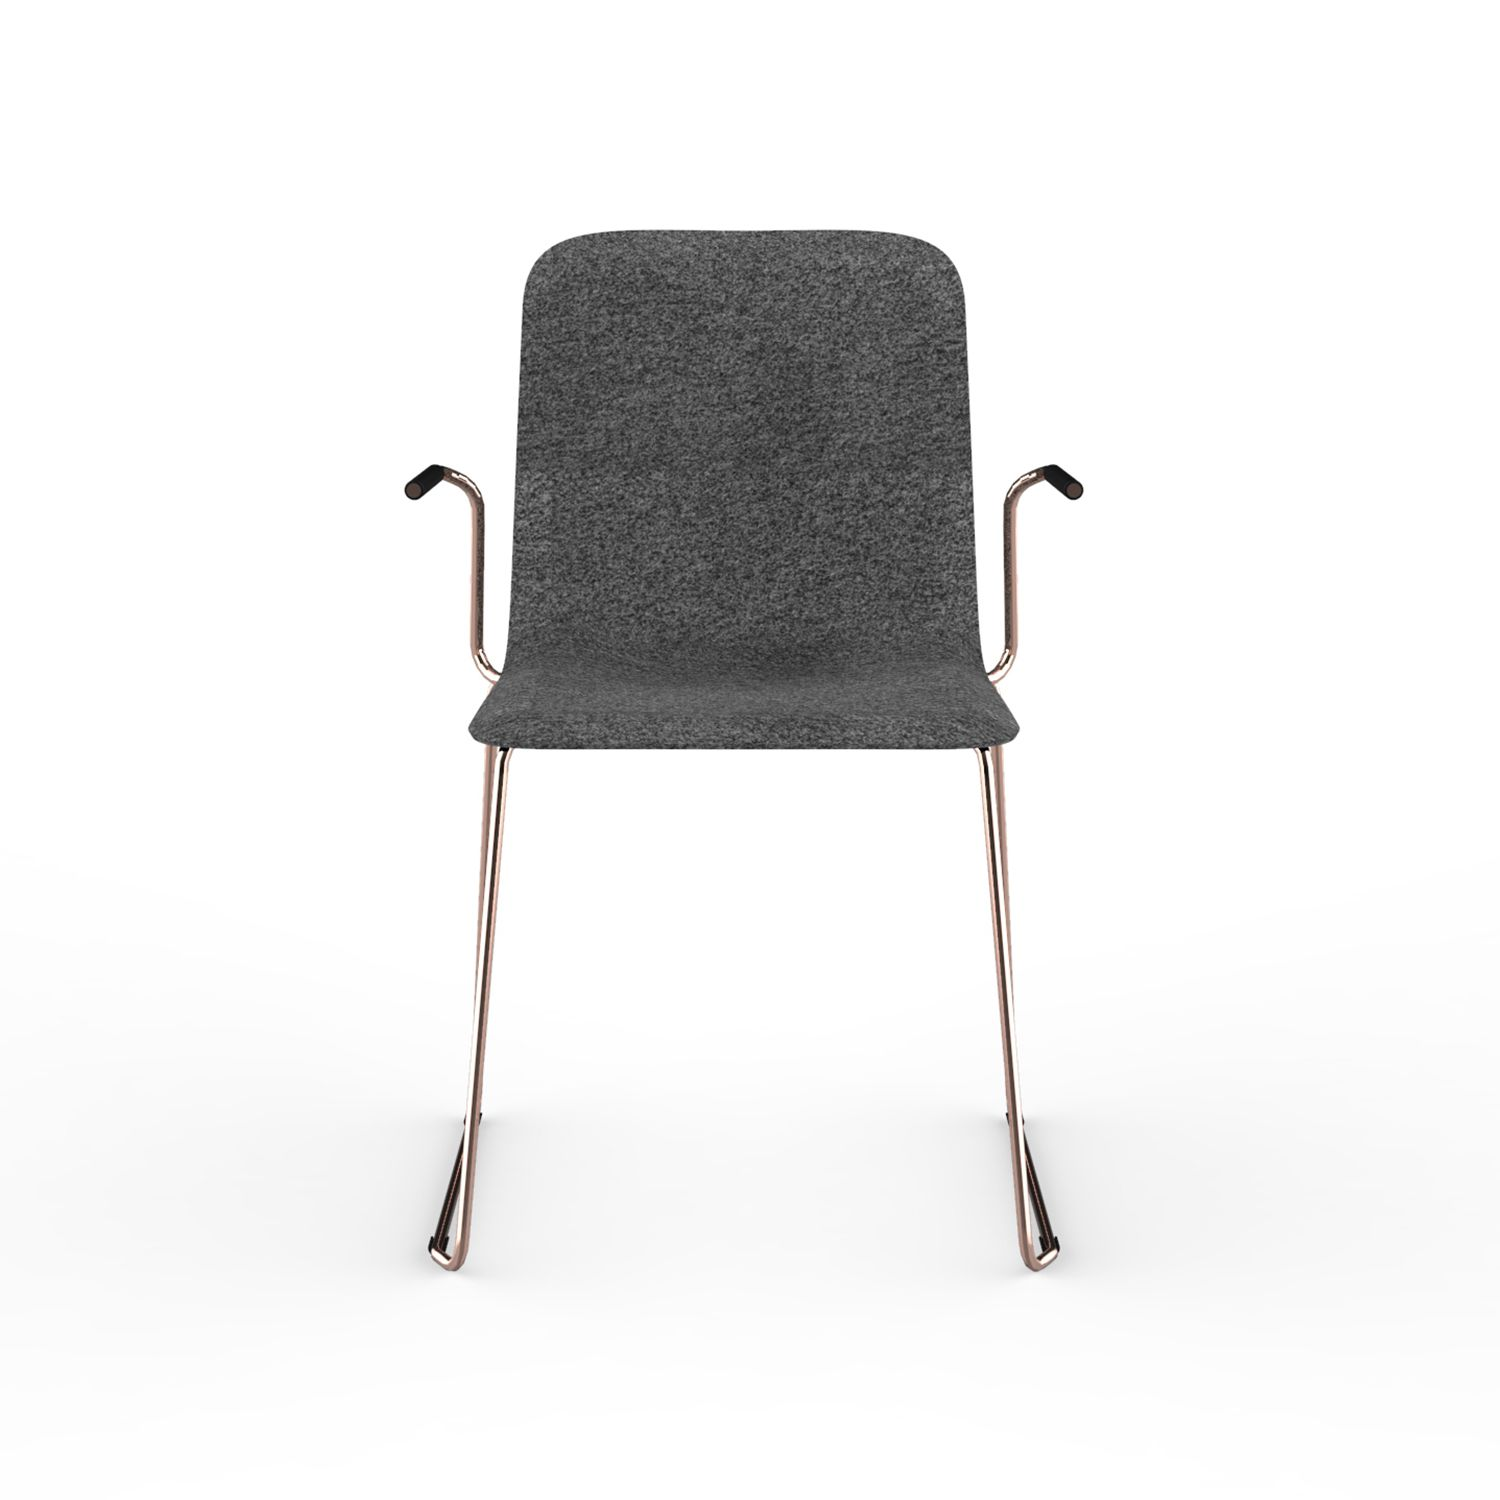 this 142 chair